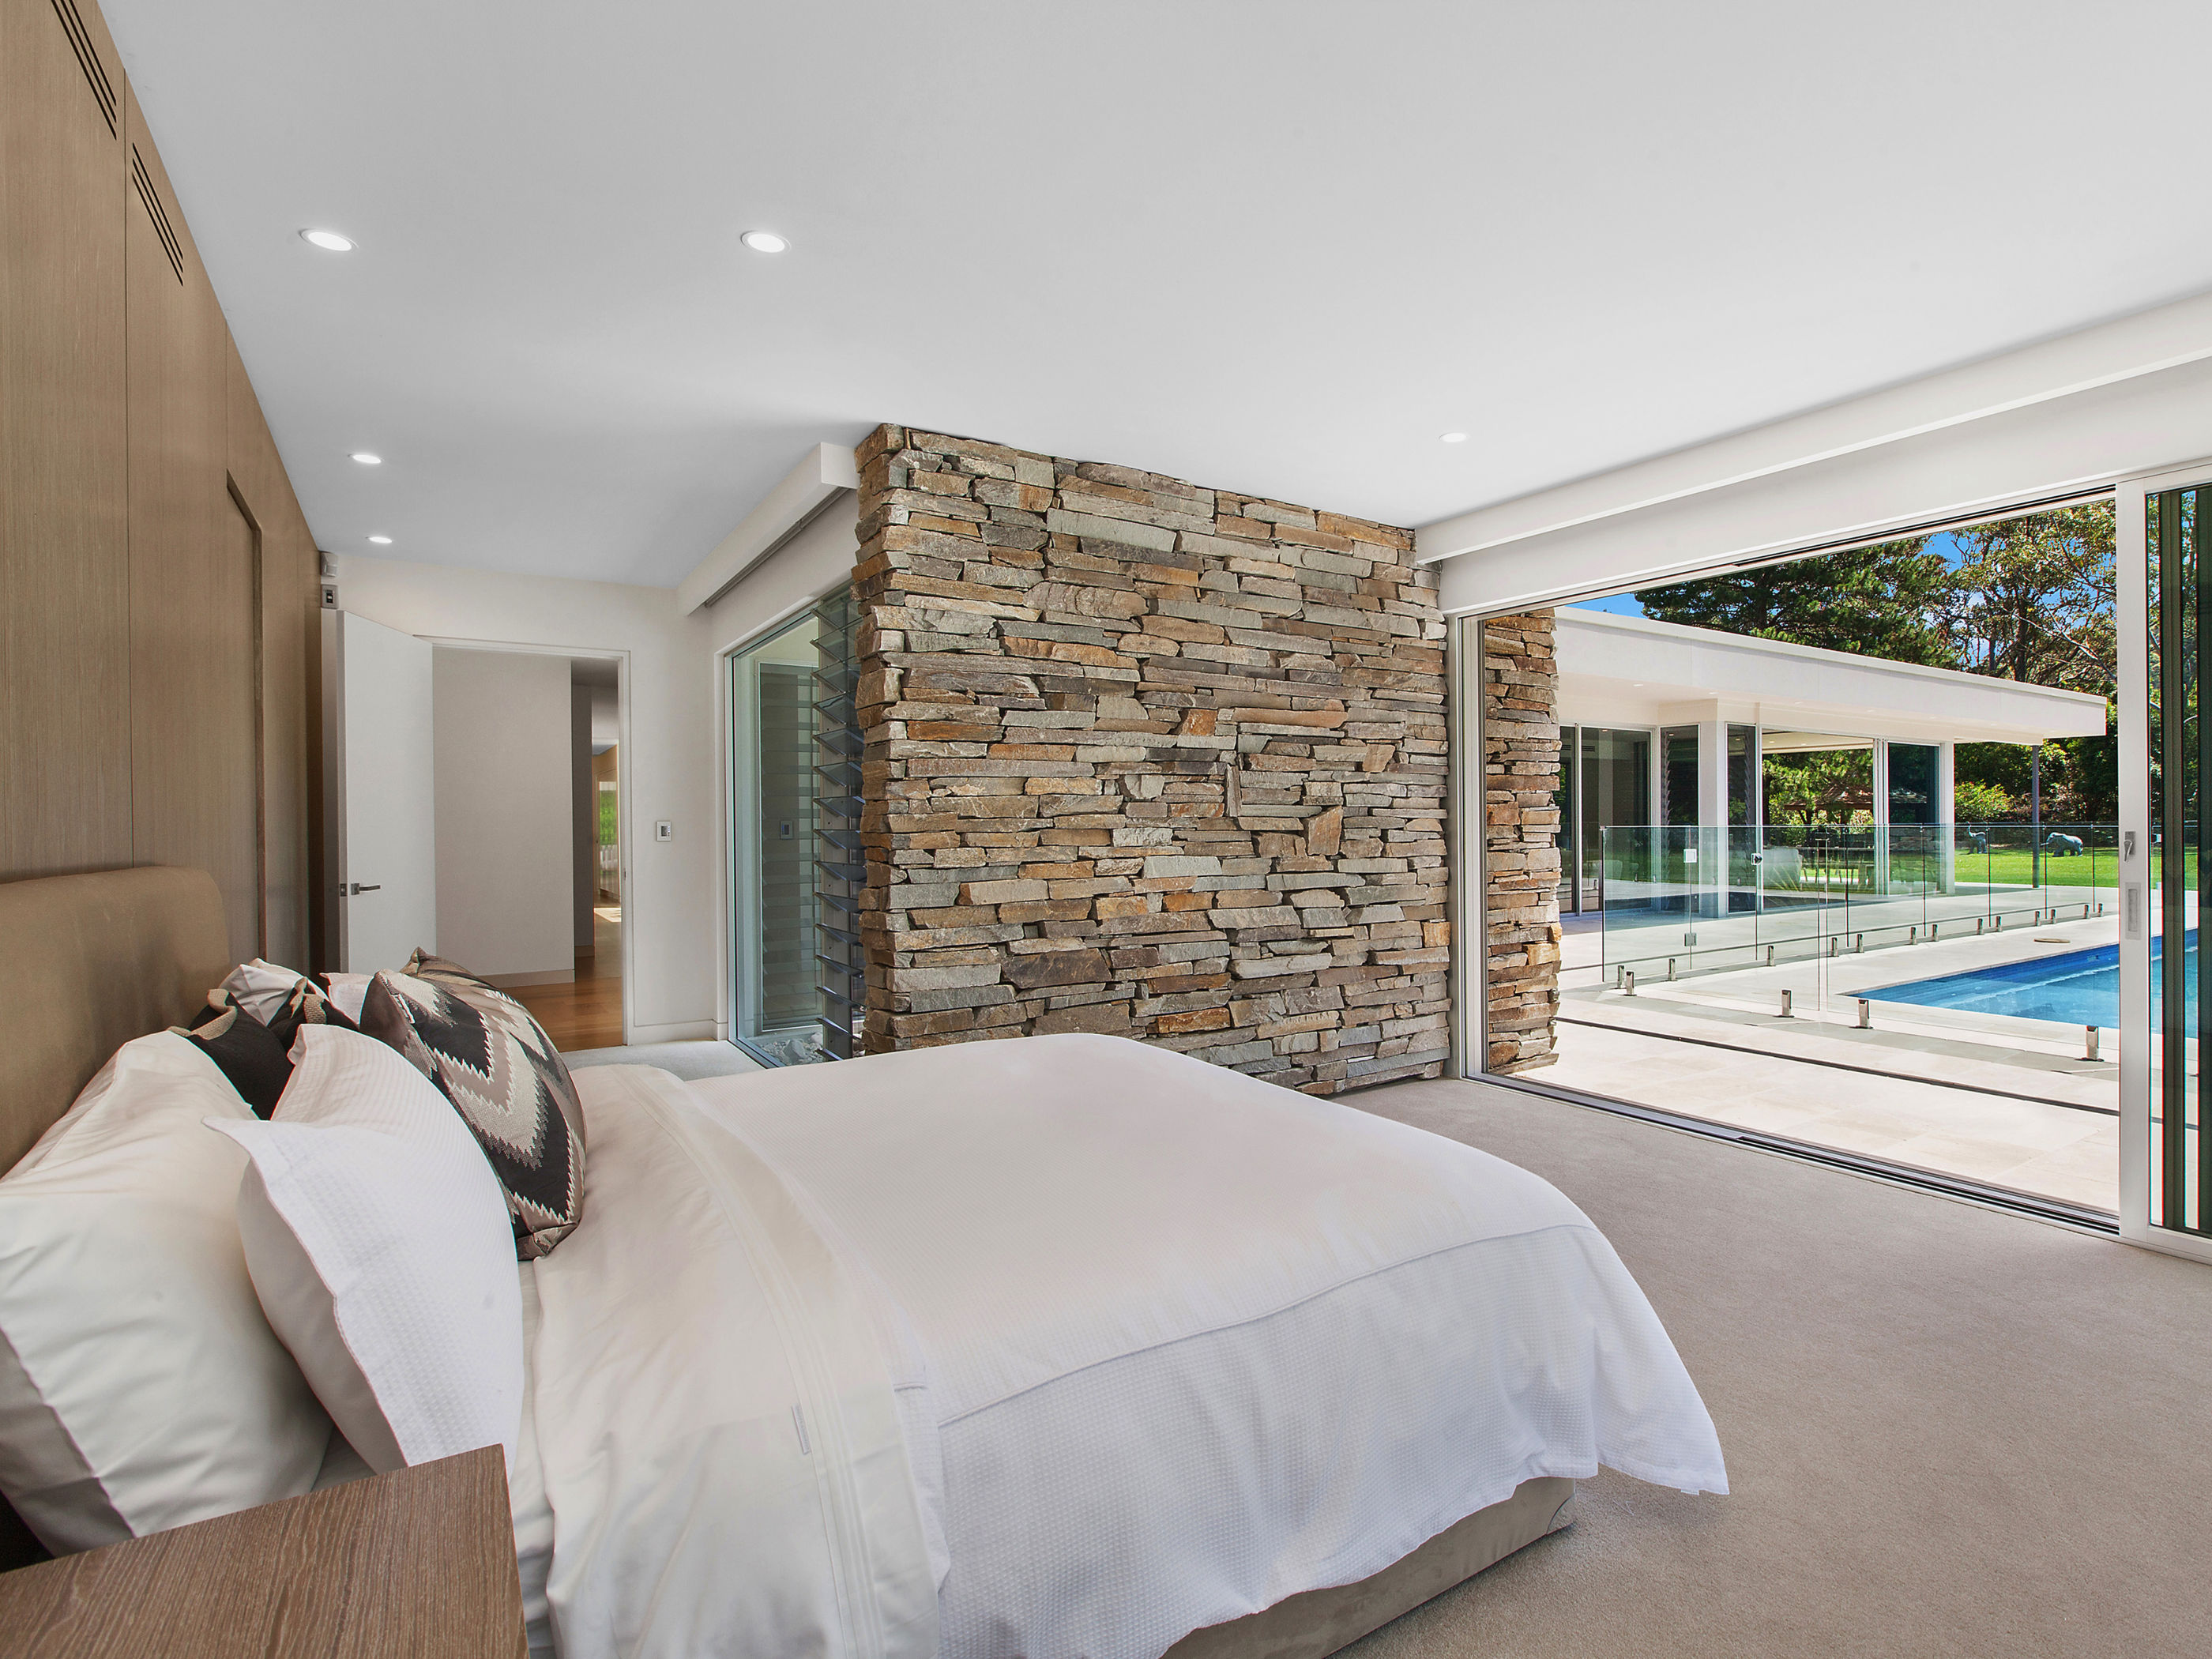 Designing An Inspiring Interior With Beautiful Stone Feature Walls- Key Points to Consider